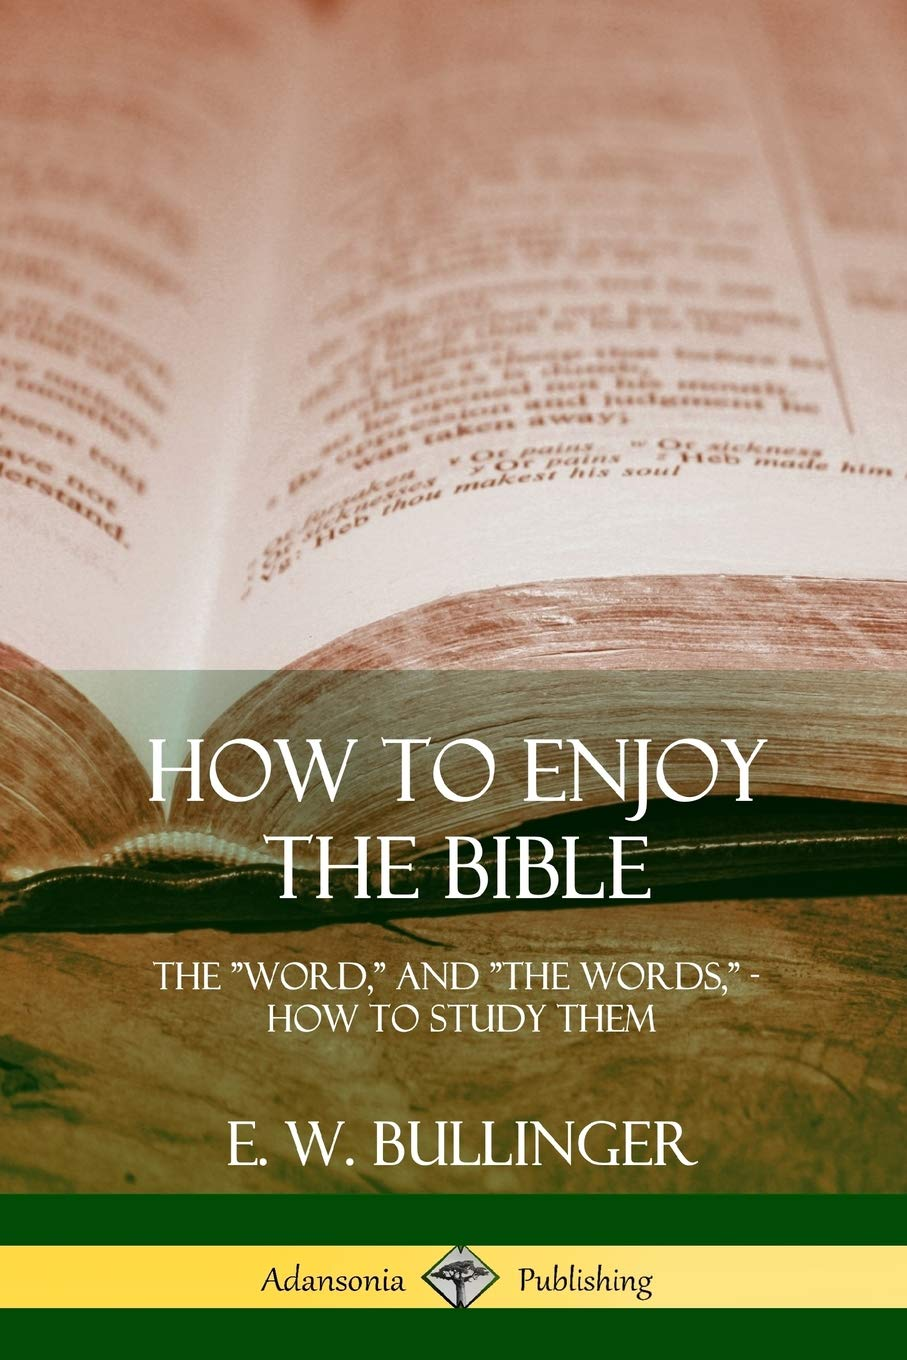 """How to Enjoy the Bible: The """"Word, """" and """"The Words, """", How to Study them:  E. W. Bullinger: 9781387997435: Amazon.com: Books"""